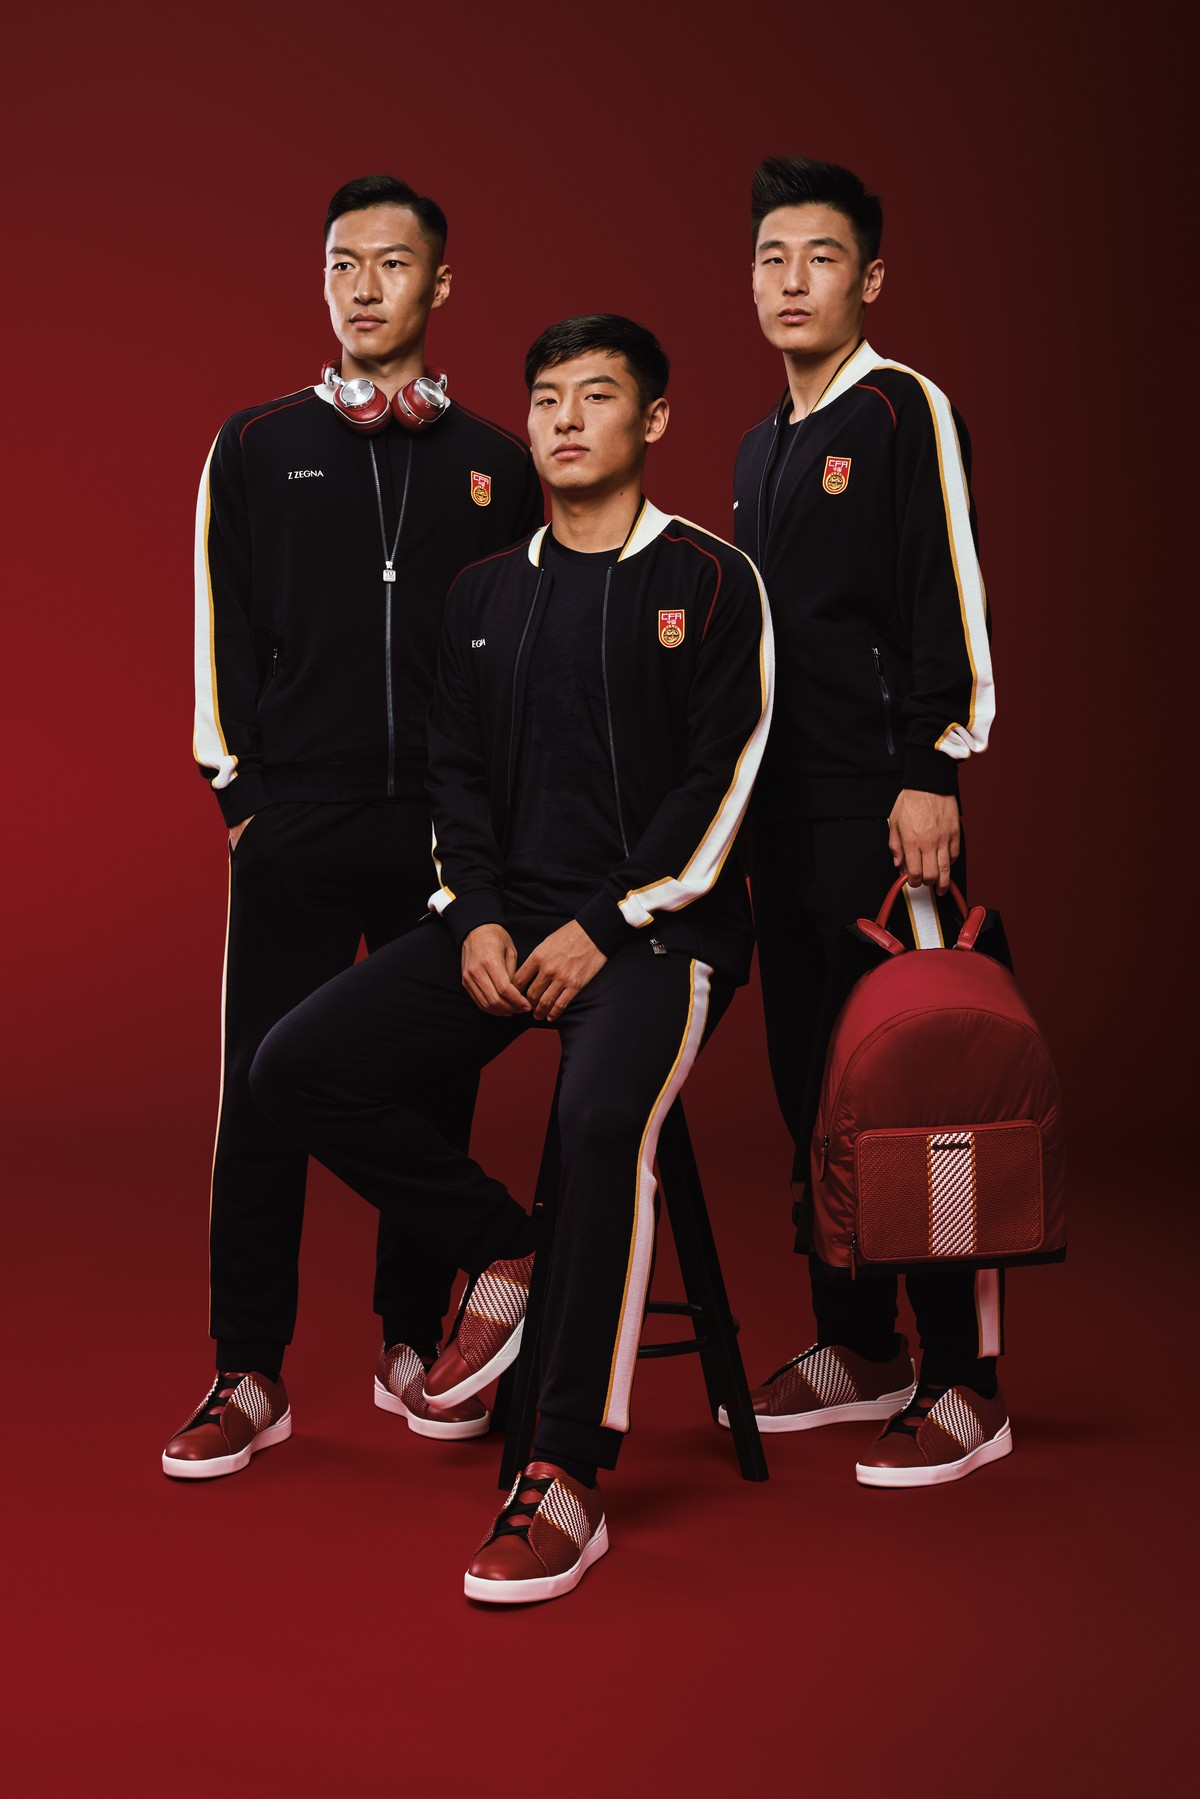 Zegna calcio Team Cina